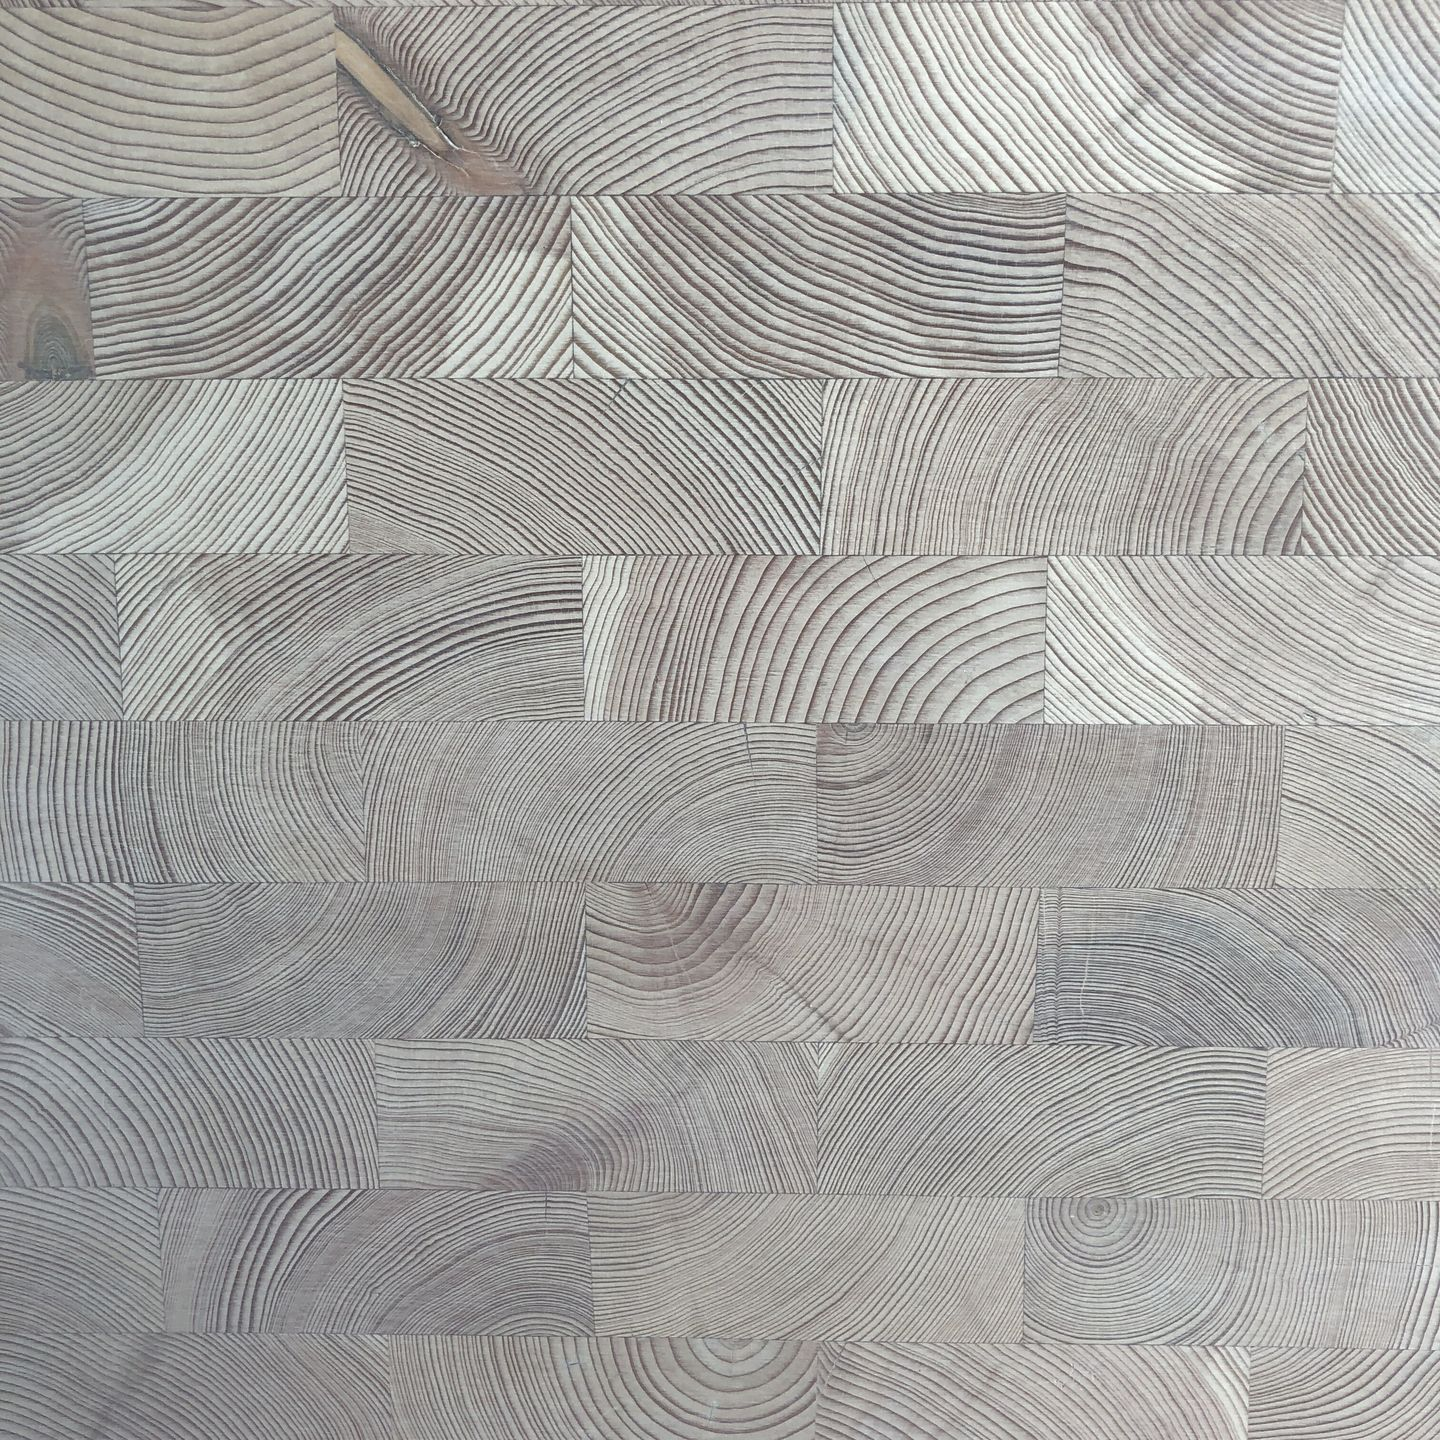 End Grain Panels (EGP)